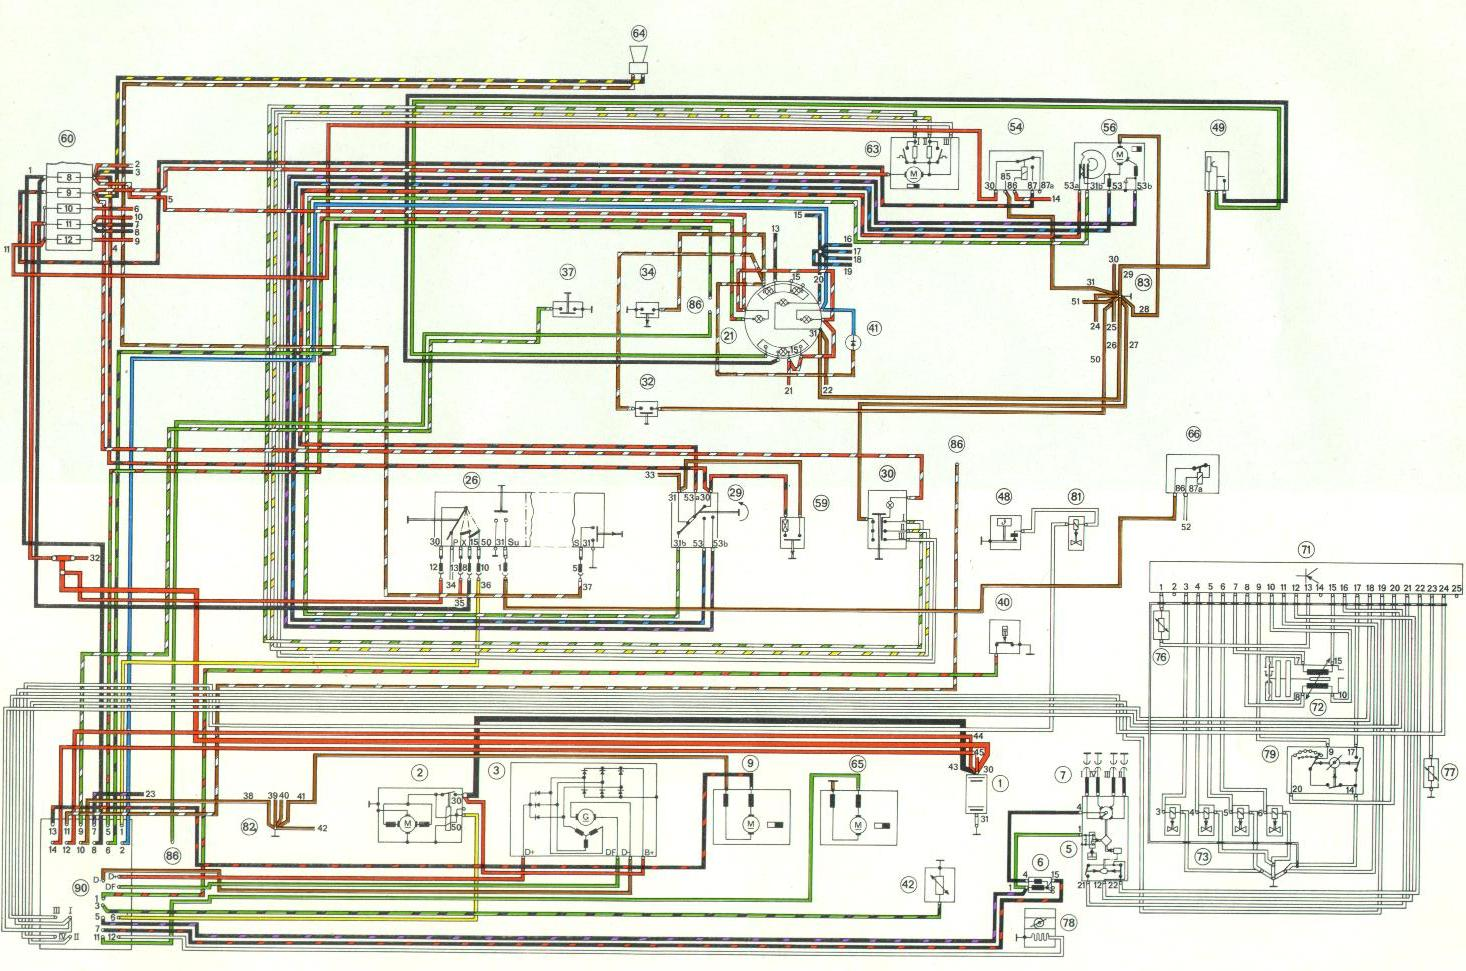 hight resolution of 1975 porsche 914 wiring diagram 31 wiring diagram images turbo engine diagram porsche 996 engine diagram